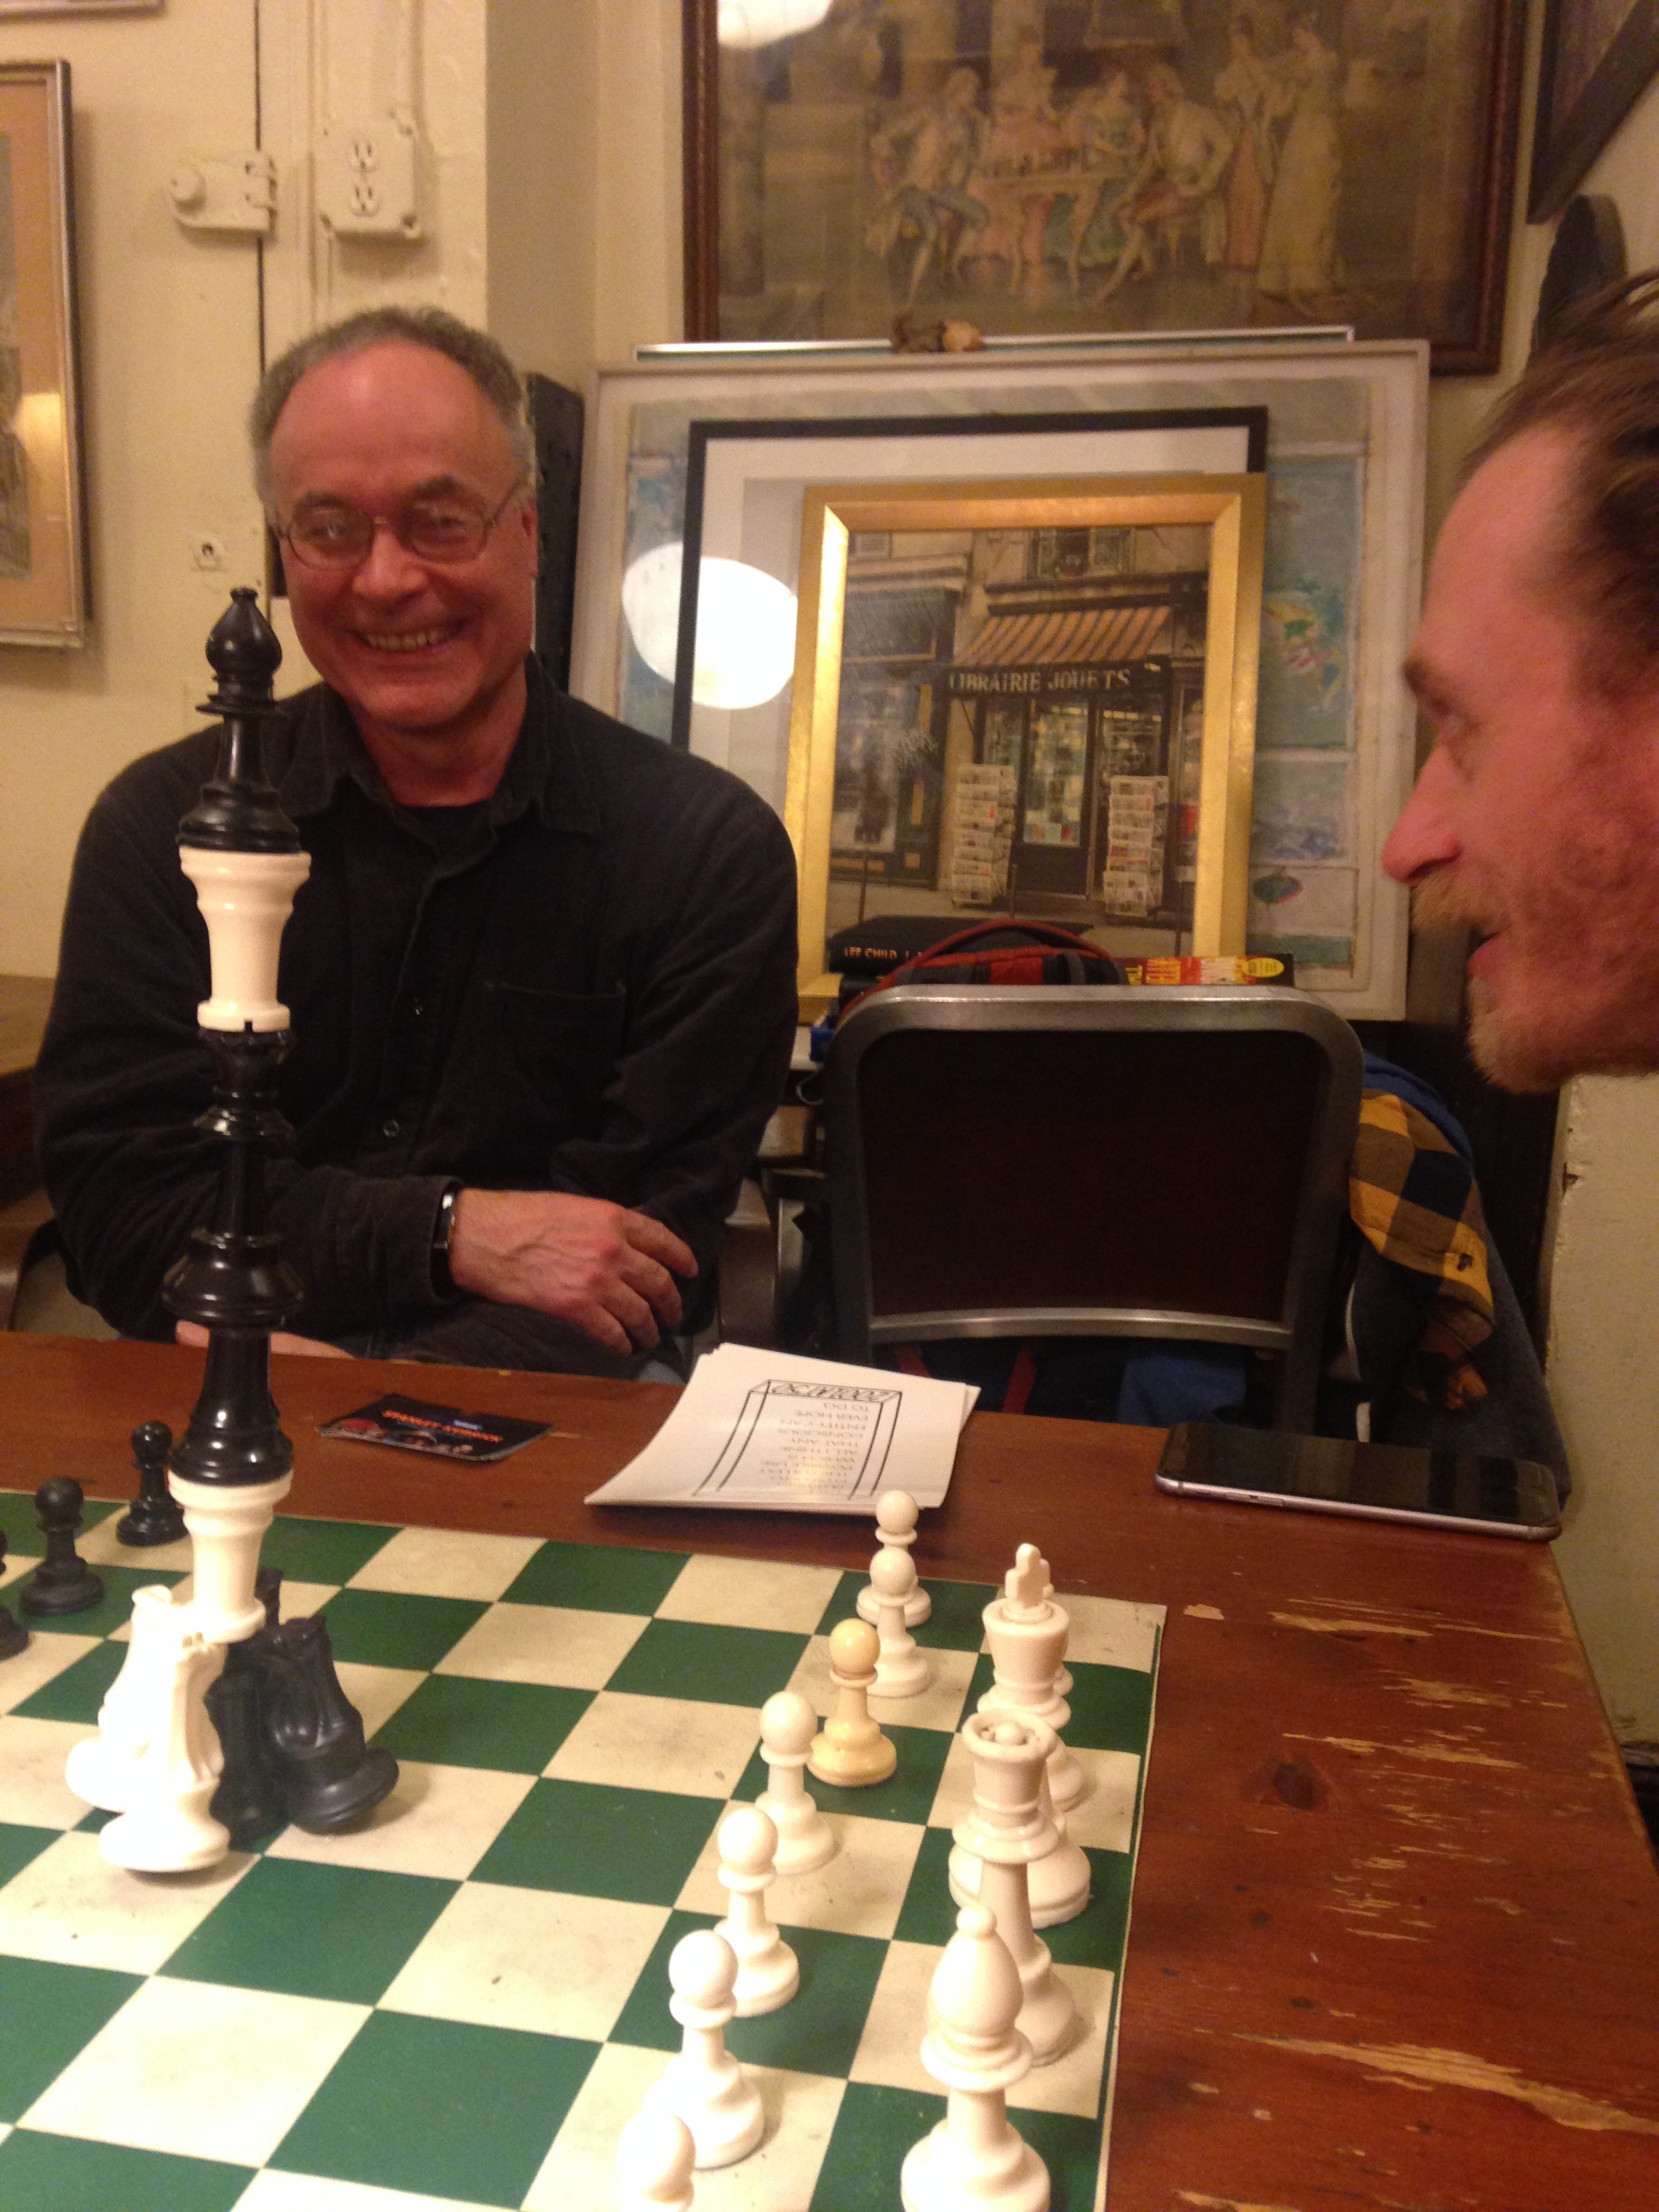 OUR VISIT TO CHESS FORUM - March 29, 2018